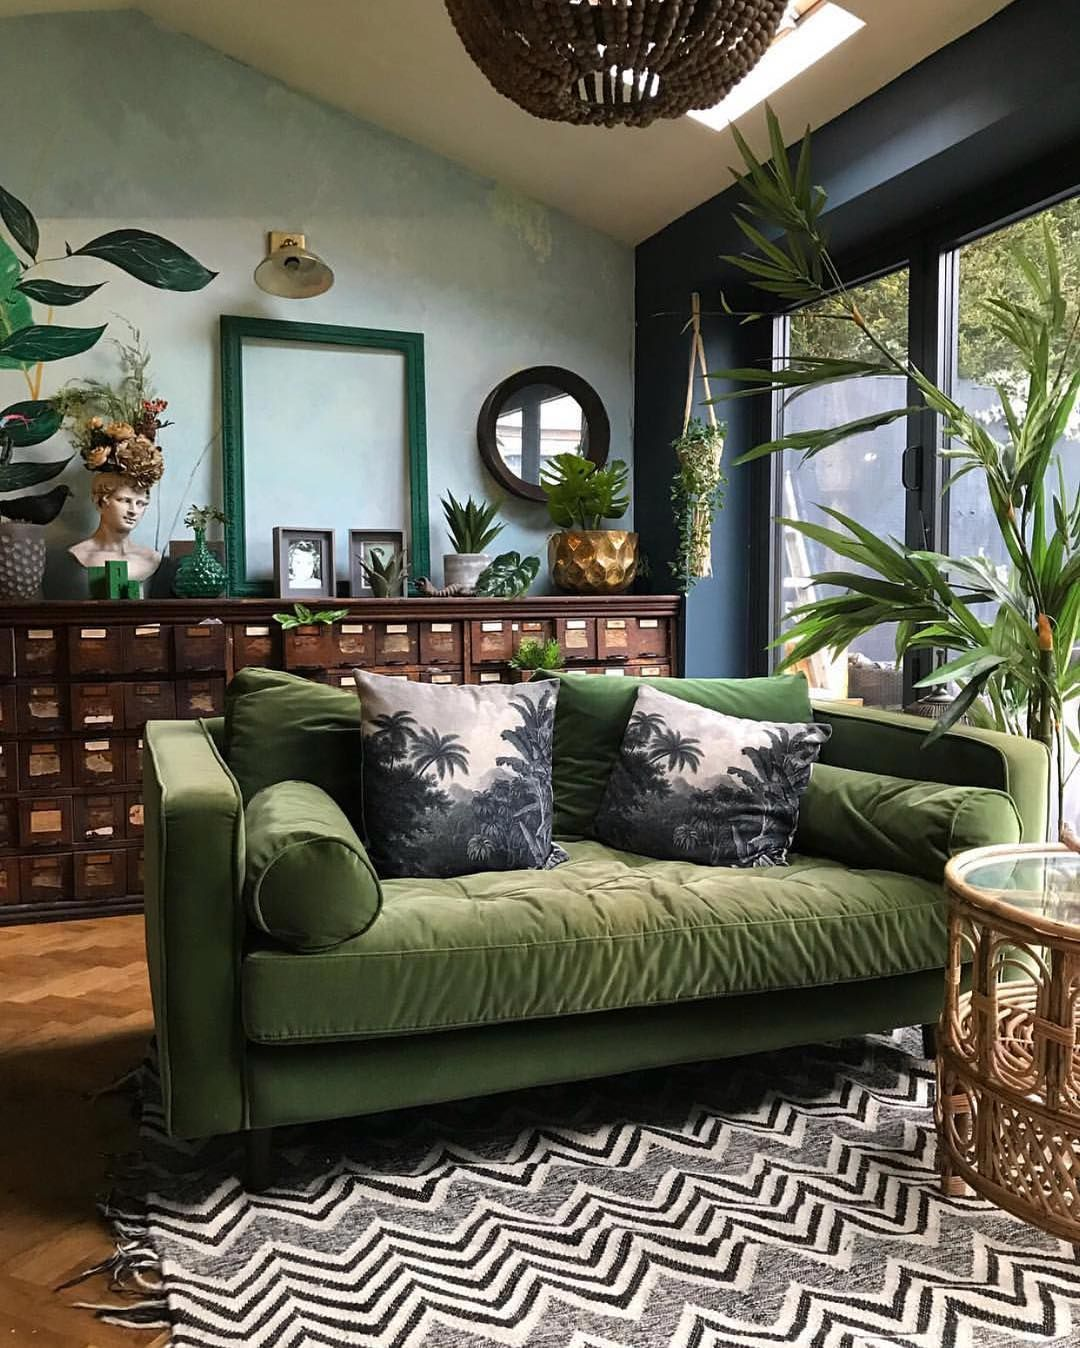 Green sofa and accents plants and vintage library chest in this eclectic living room